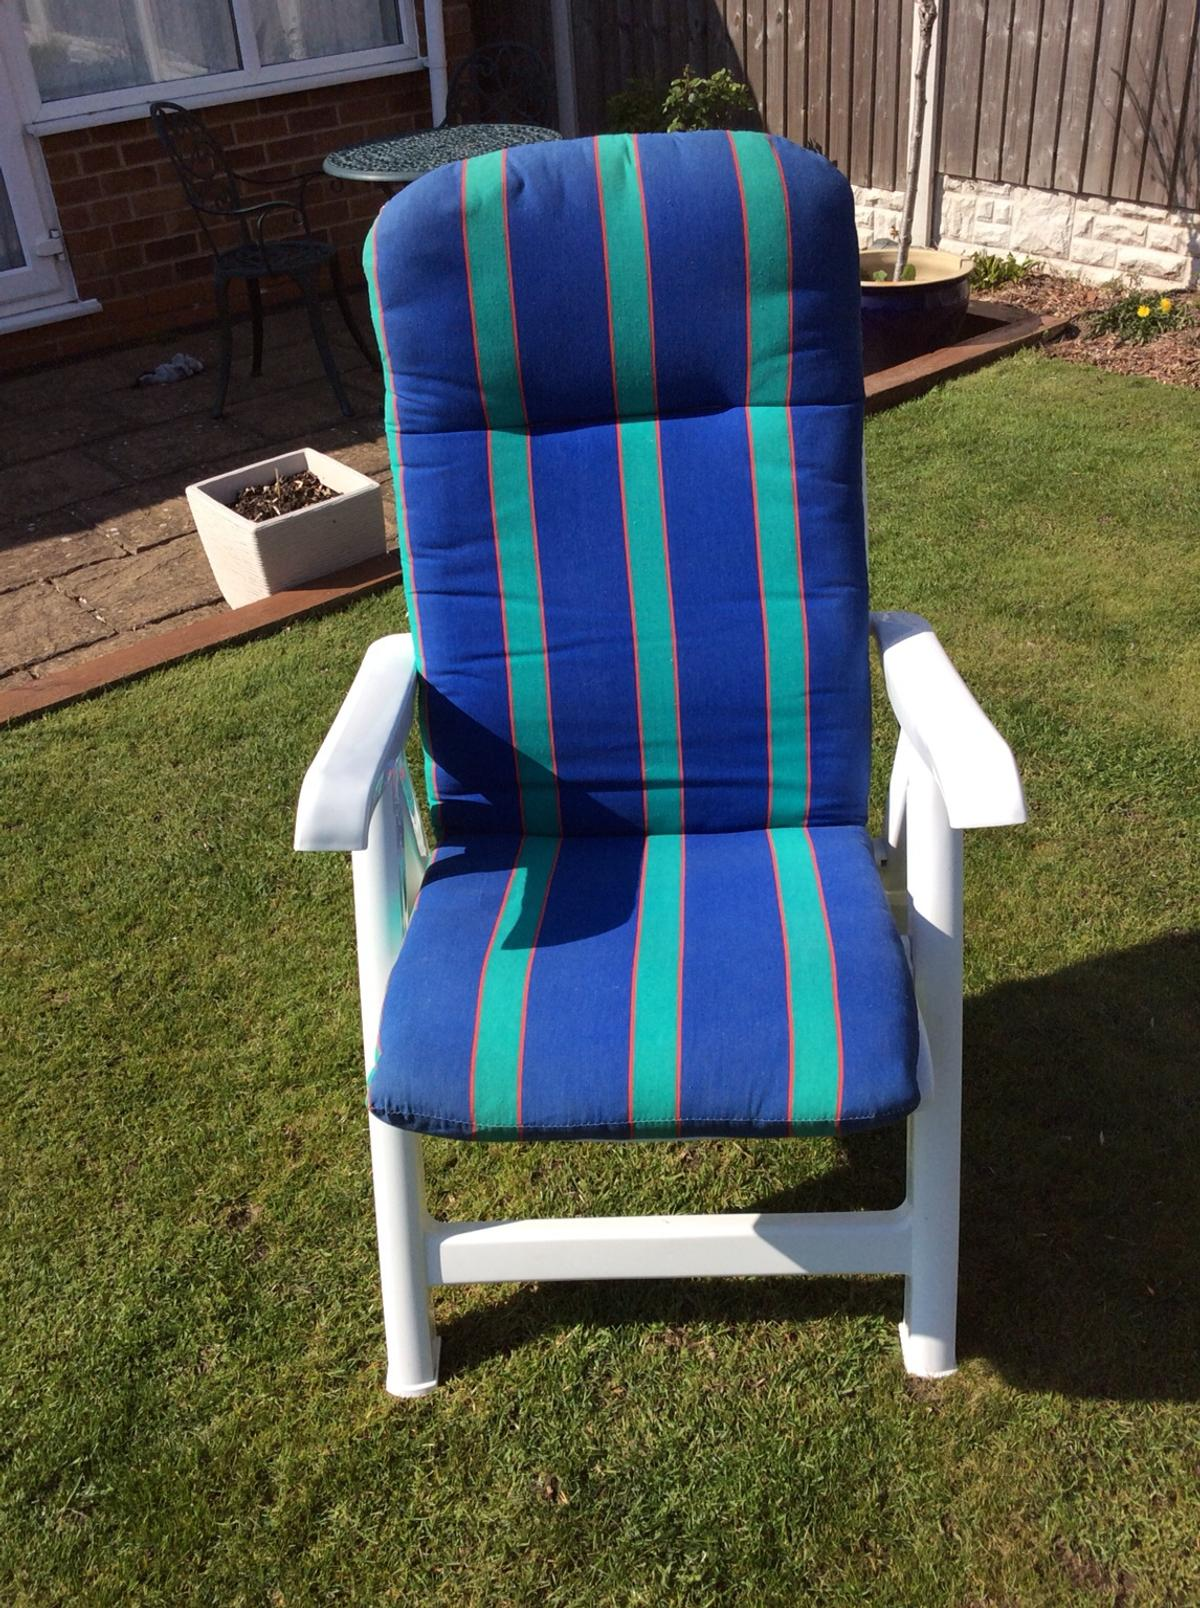 Terrific 4 Reclining Garden Chairs Creativecarmelina Interior Chair Design Creativecarmelinacom